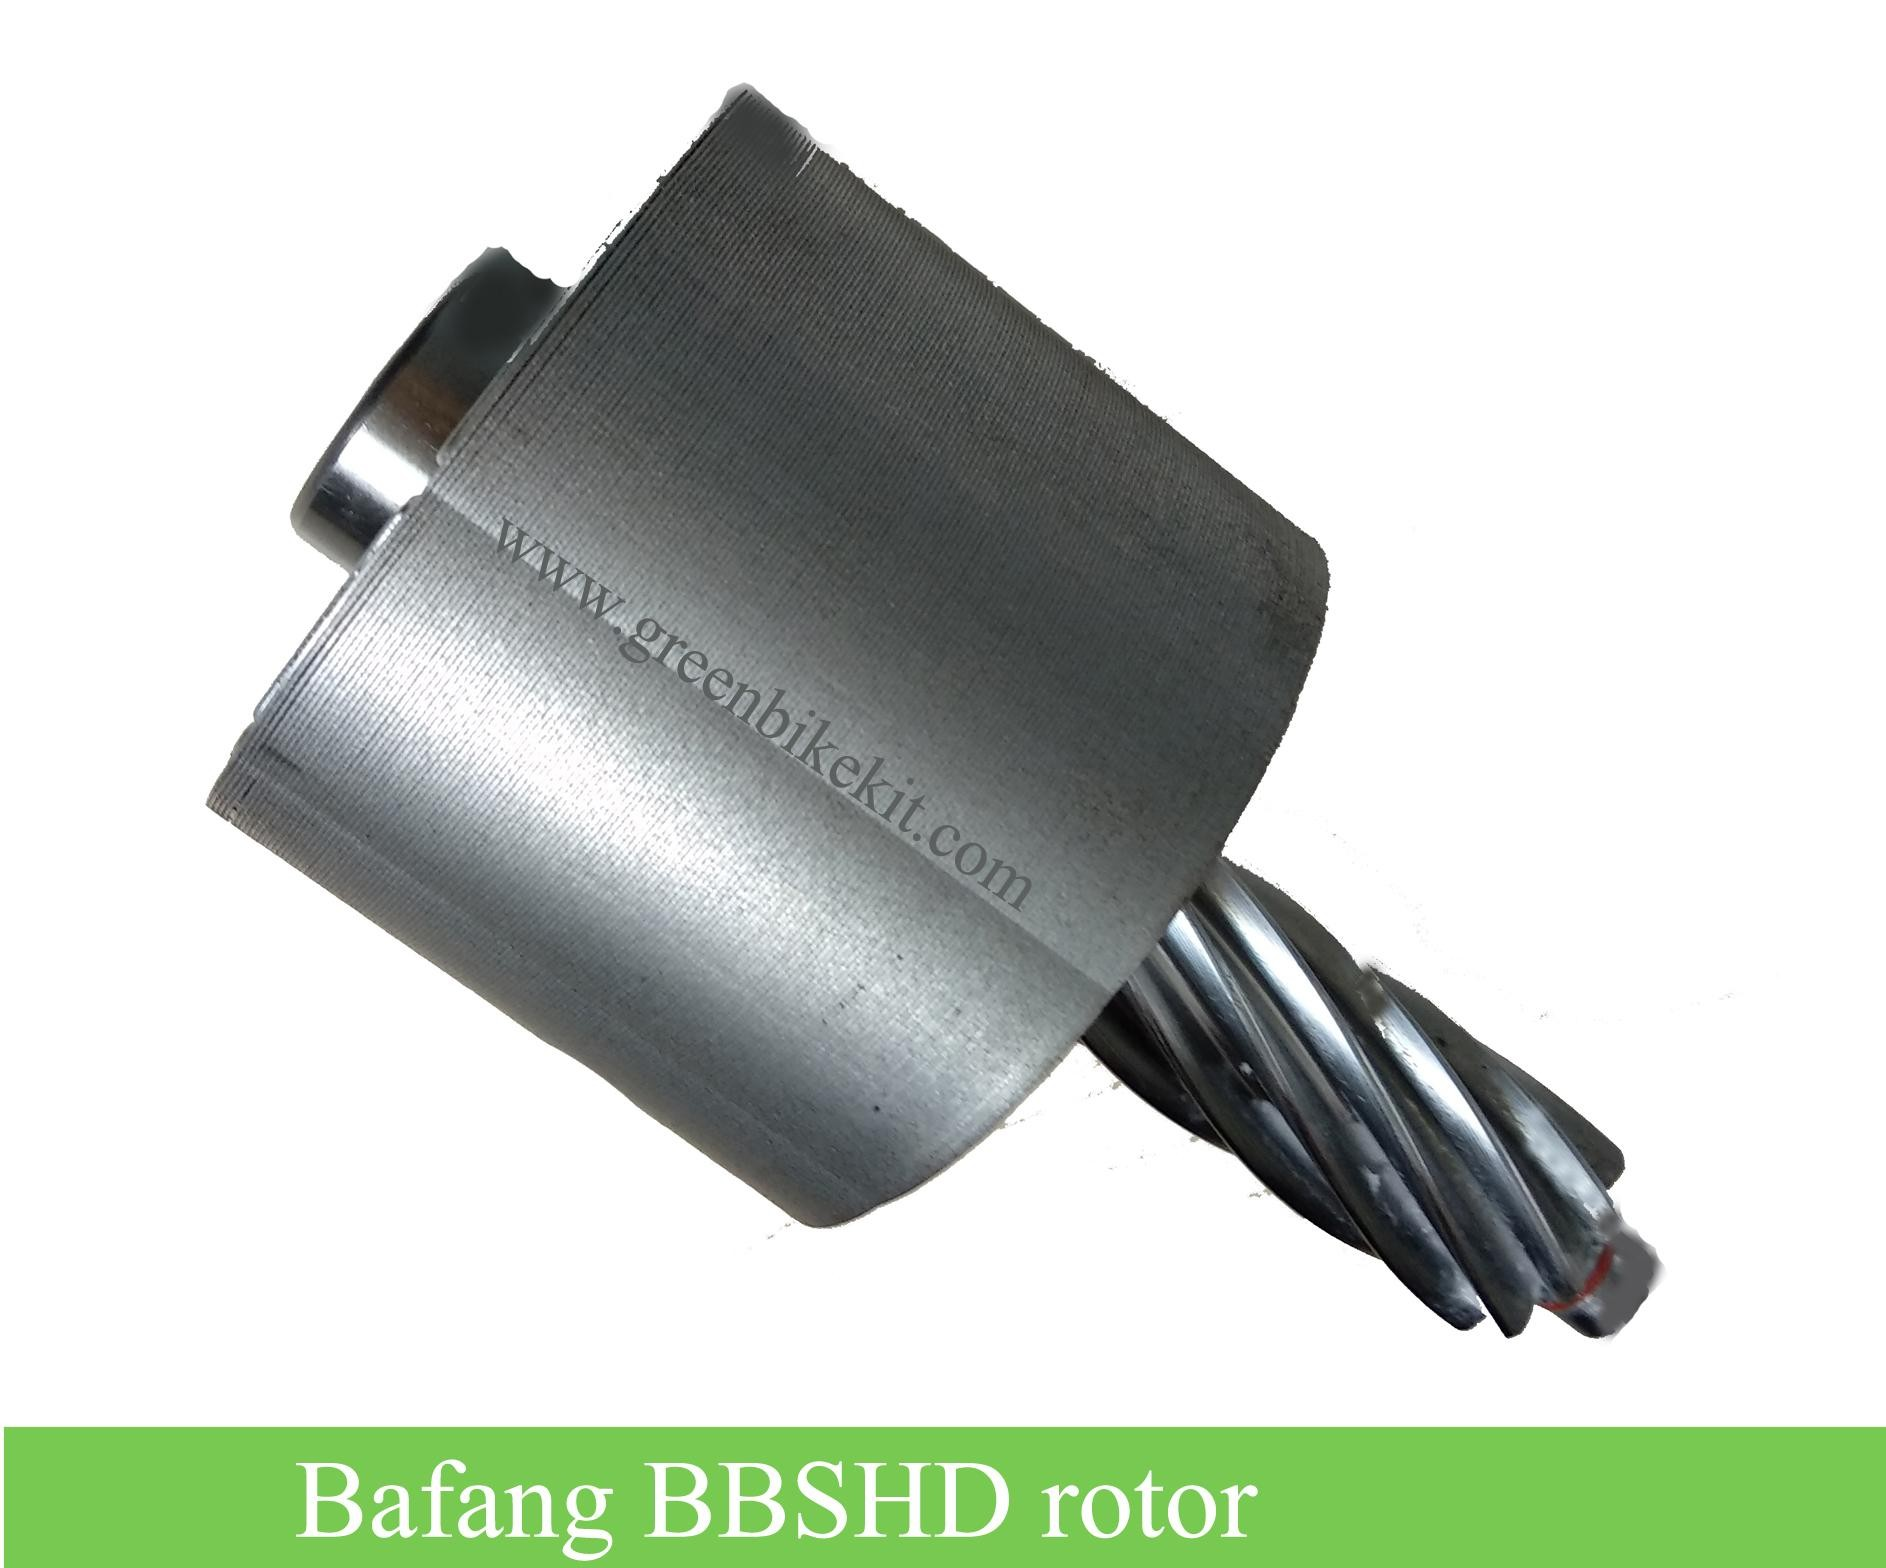 Bafang mid motor BBSHD motor rotor for replacement